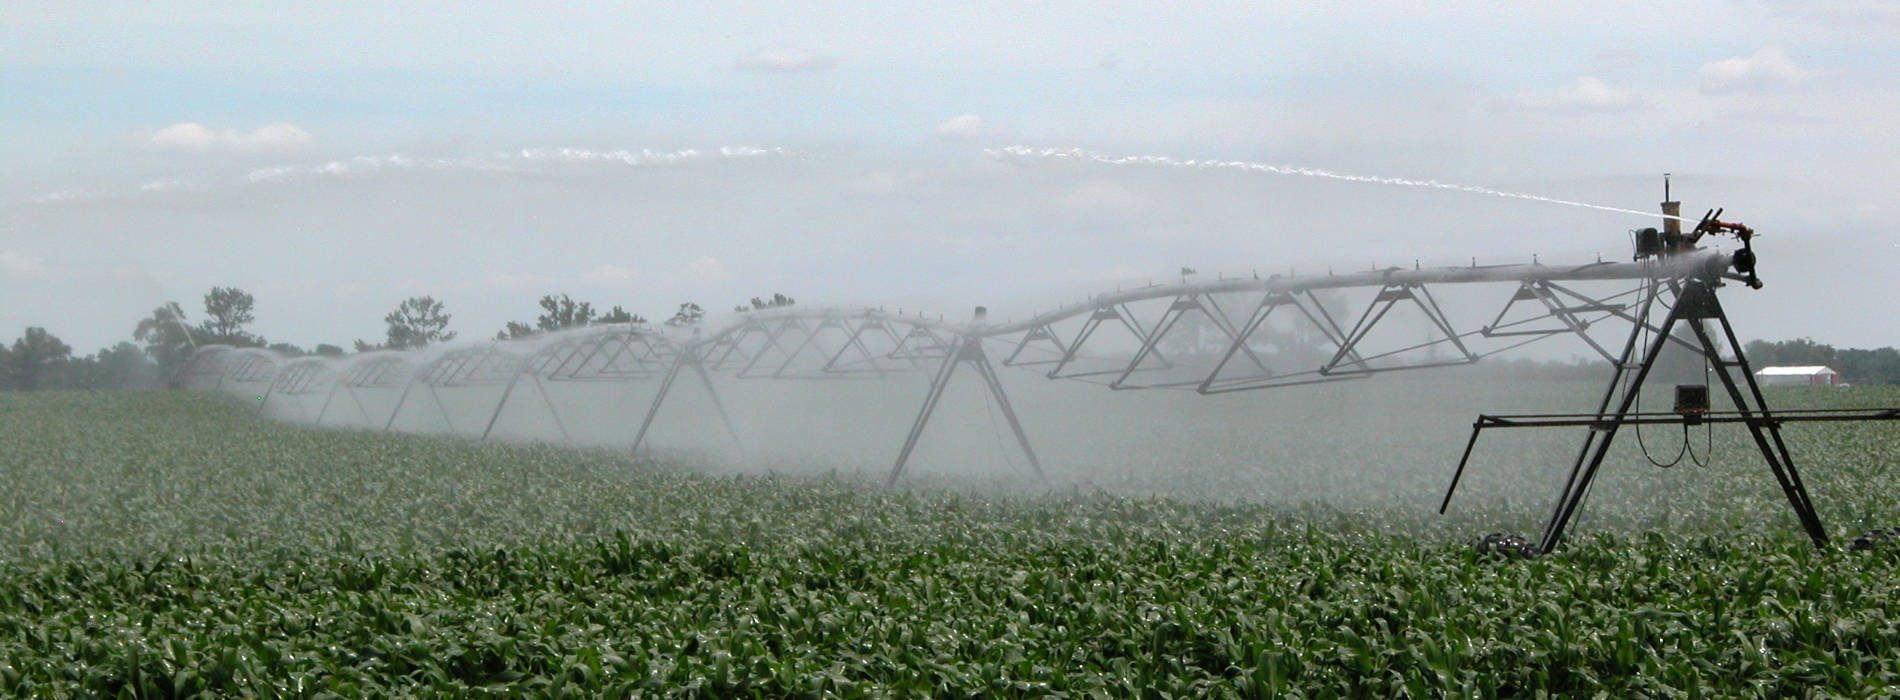 Constraints hold back irrigation progress